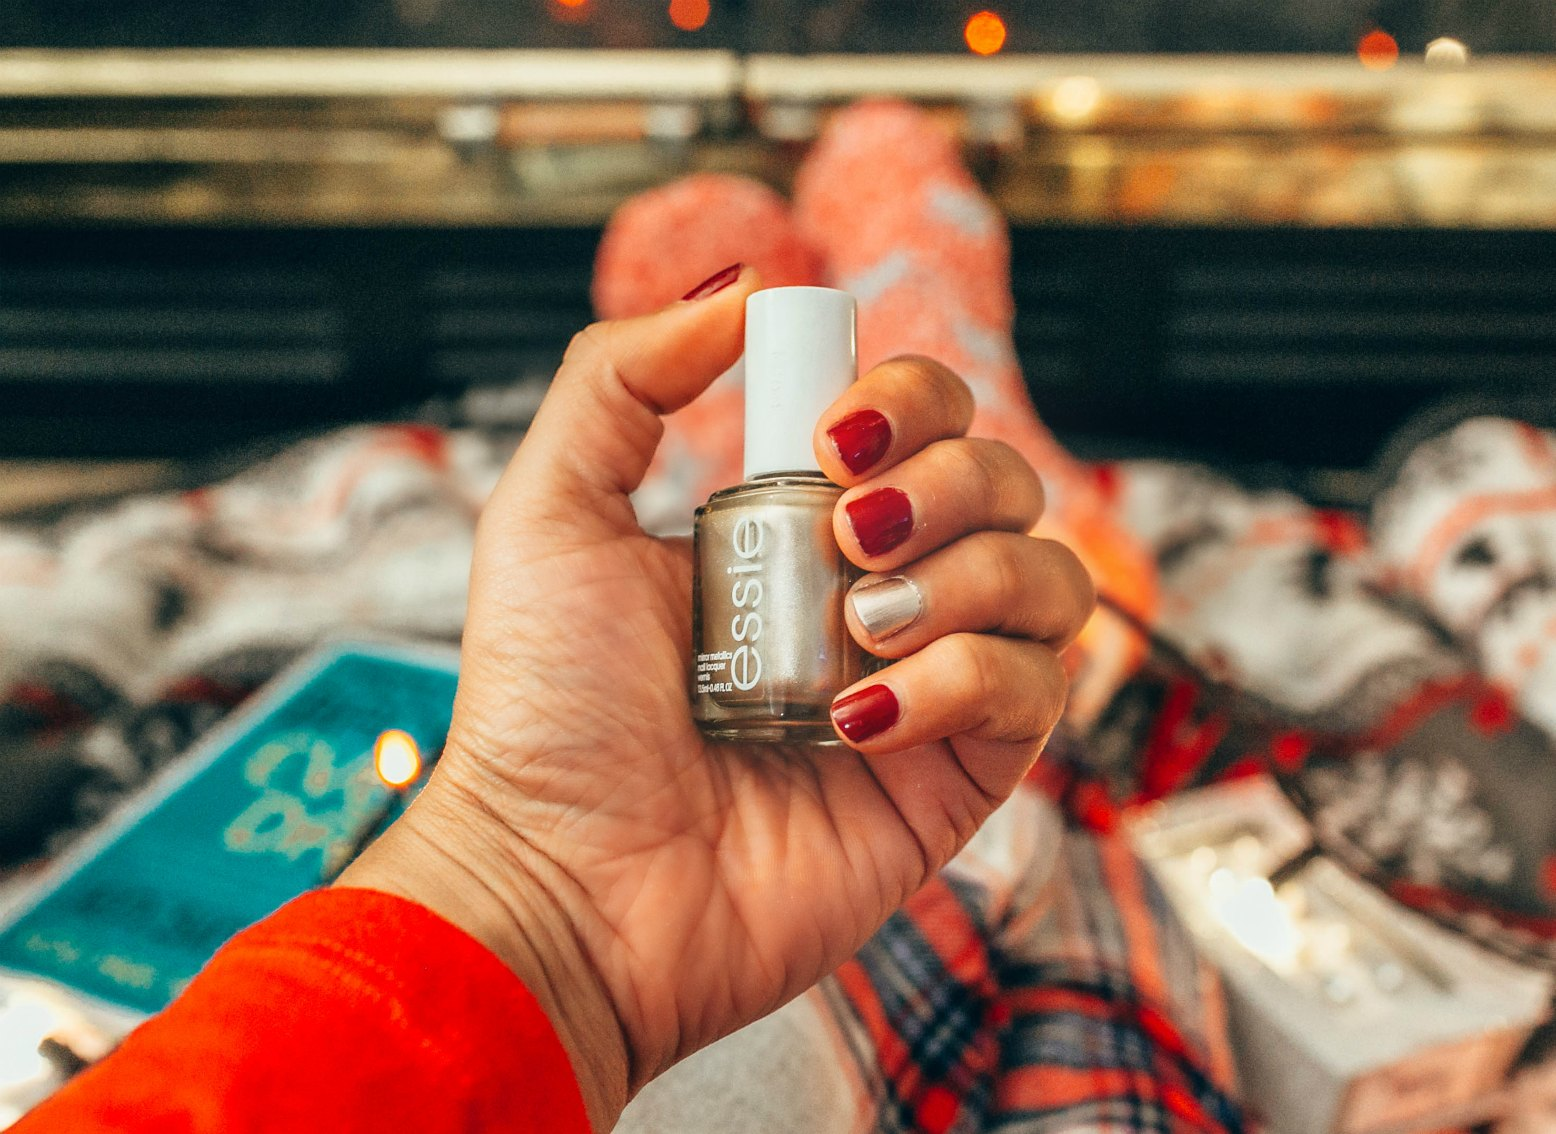 Essie Mirror Metallics Nail Polish good as gold | | 7 Kohl's Gifts Under $25 featured by top US life and style blog, Dreaming Loud: image of ESSIE nail polish available at Kohls